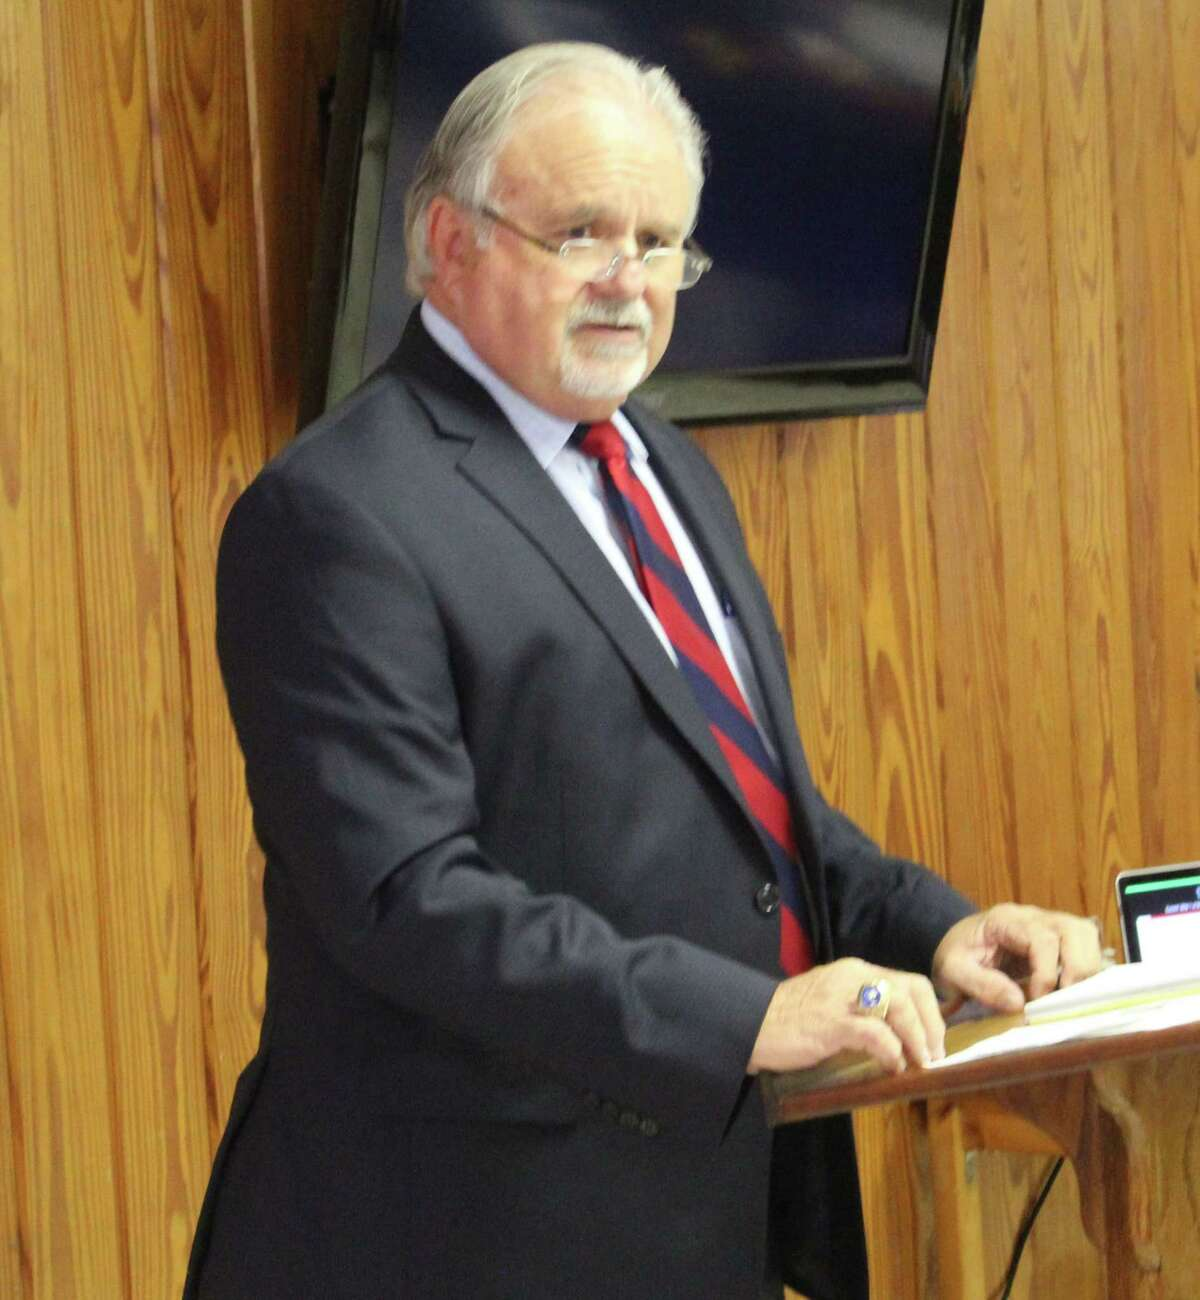 Coldspring-Oakhurst CISD Superintendent Dr. Leland Myers discusses updates to the school district and the upcoming bond election during the Coldspring/San Jacinto County Chamber luncheon on Sept. 19 at the Coldspring Community Center.